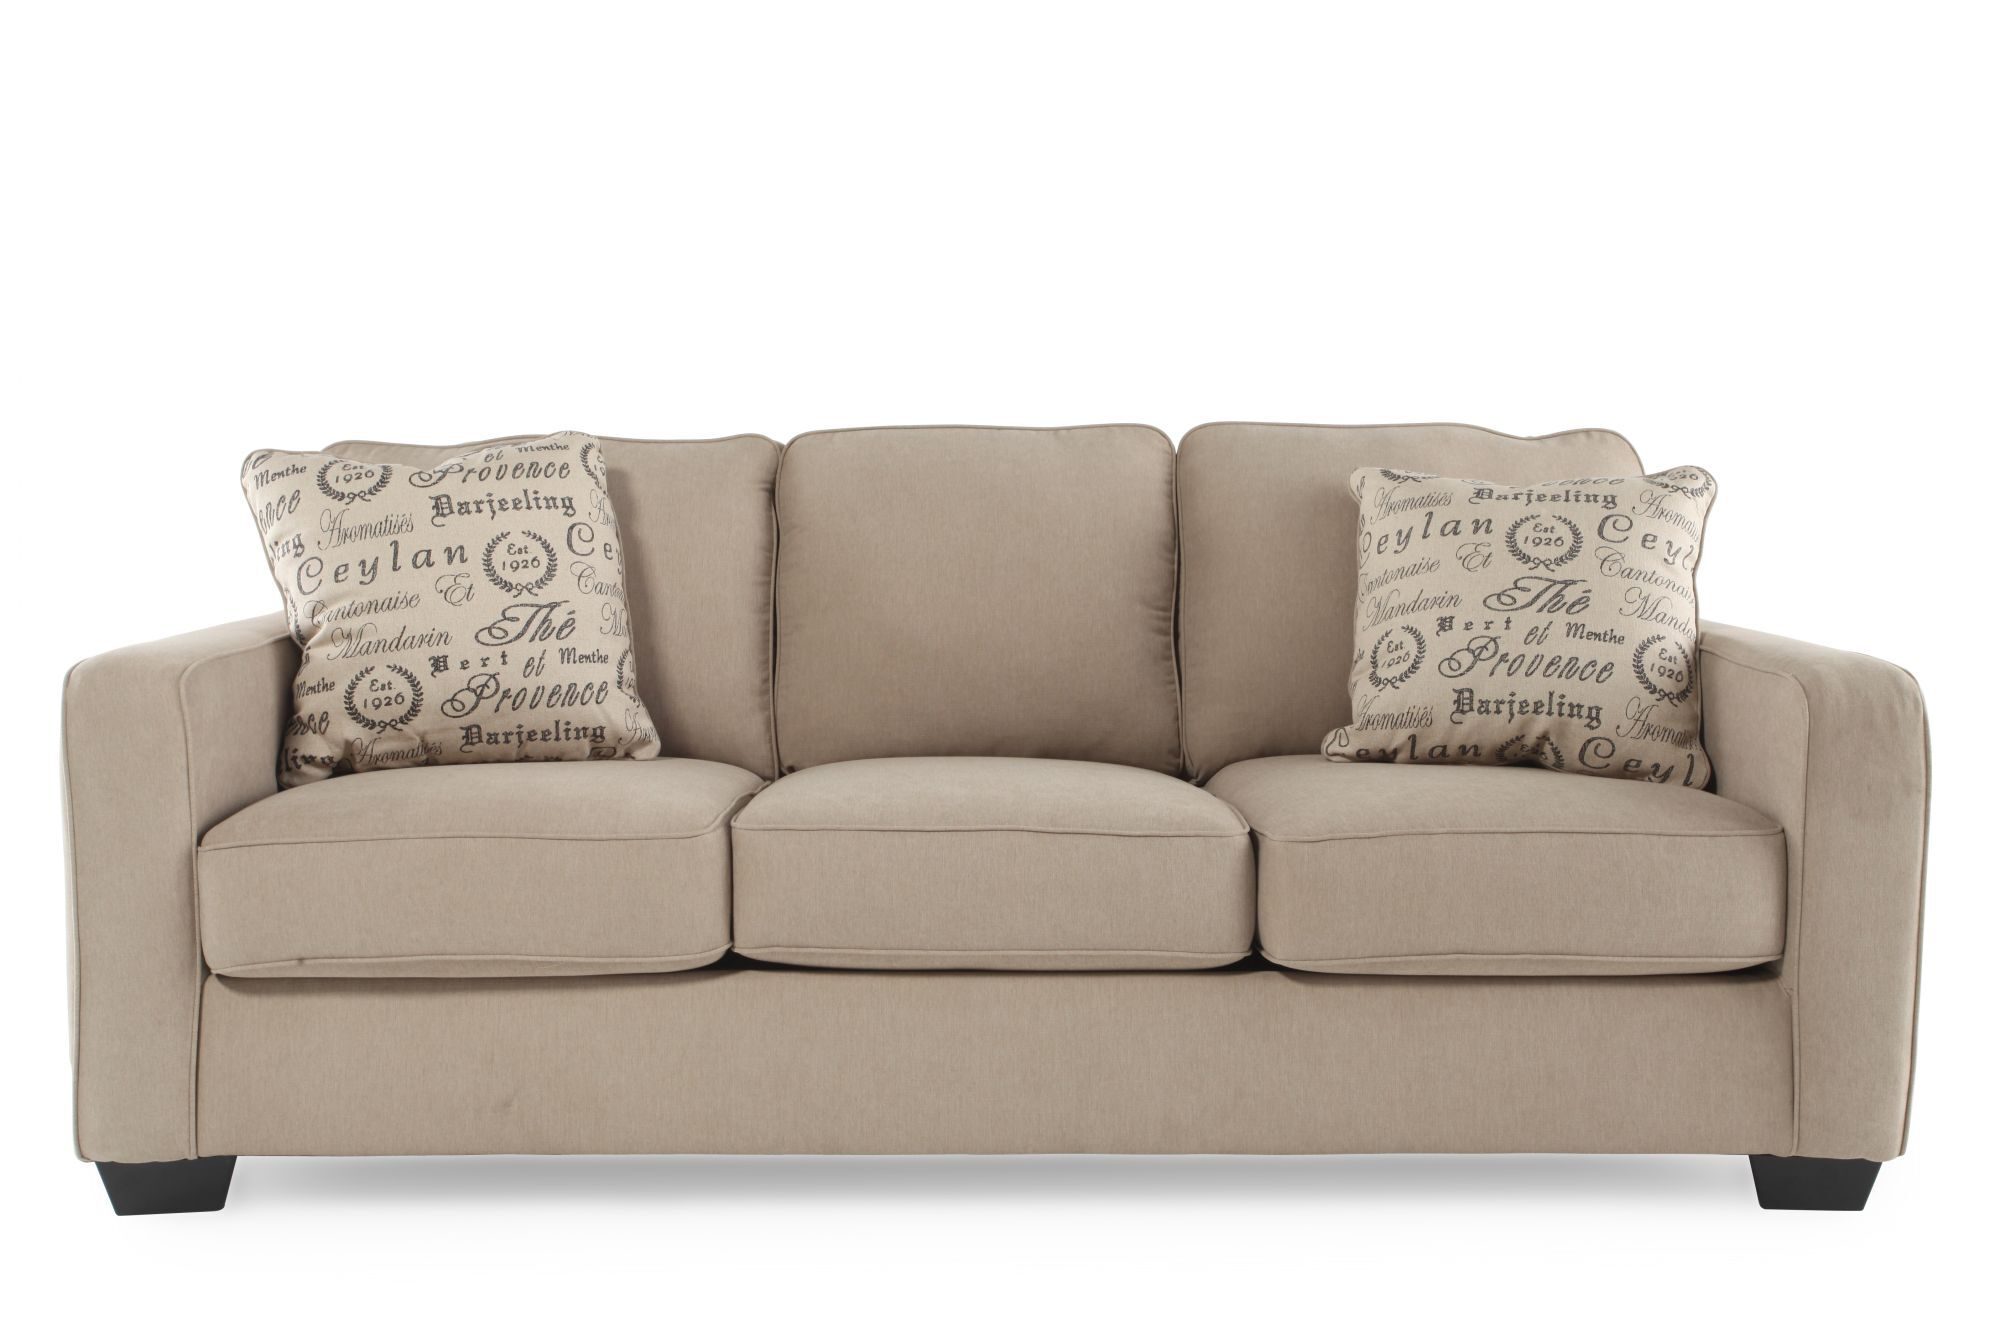 ashley alenya quartz sofa reviews four seasons mathis brothers furniture